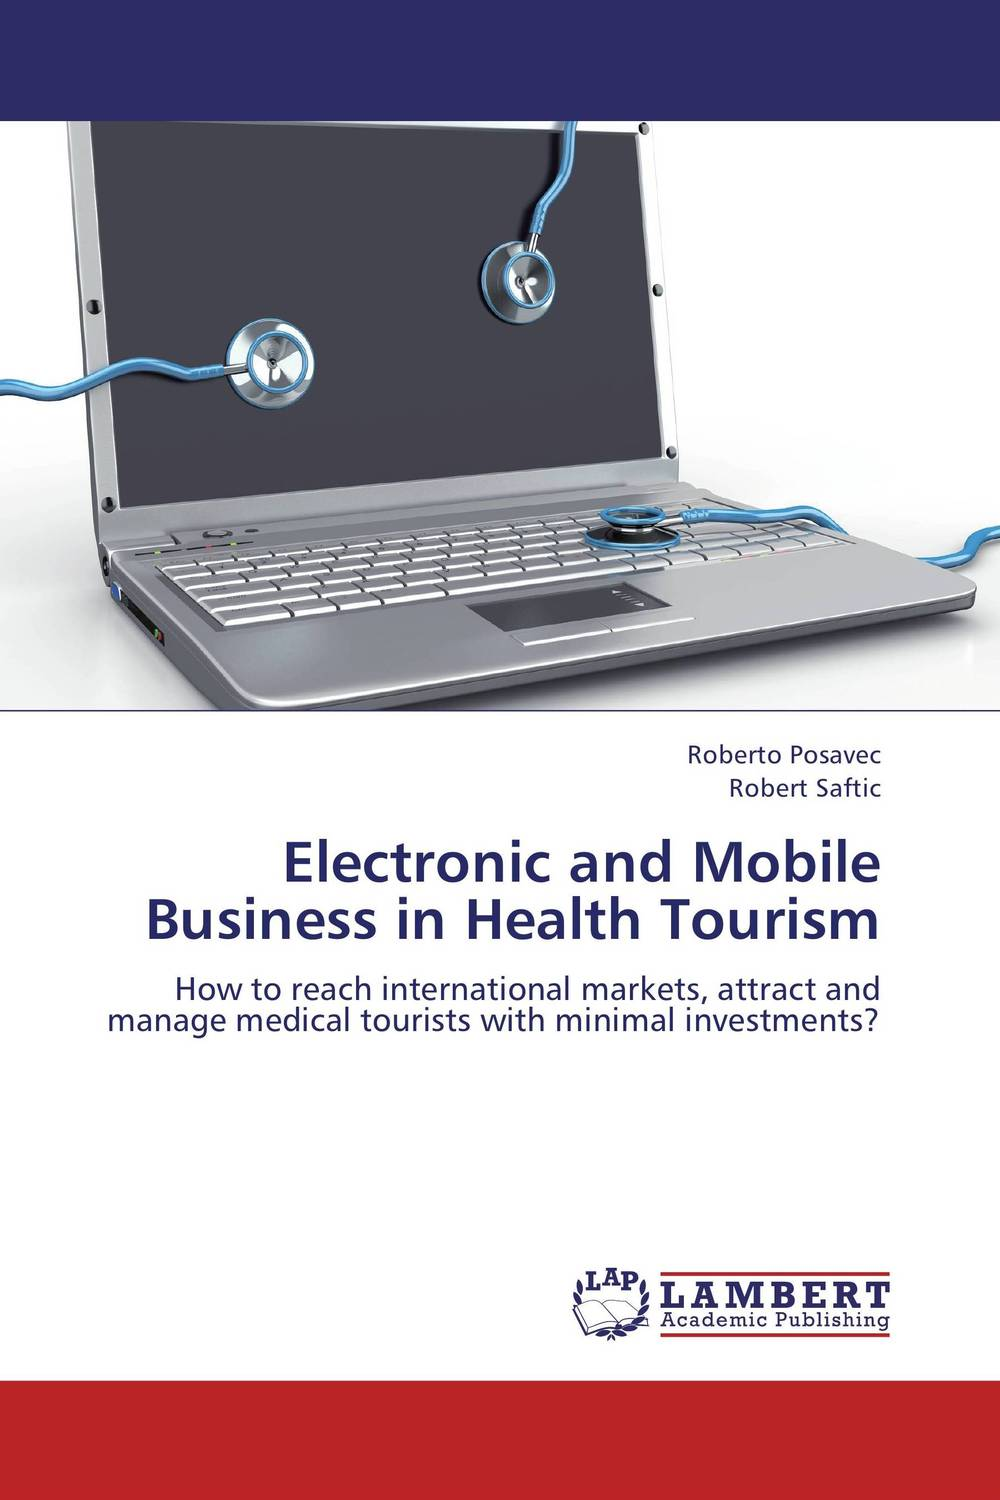 Electronic and Mobile Business in Health Tourism prostate health devices is prostate removal prostatitis mainly for the prostate health and prostatitis health capsule